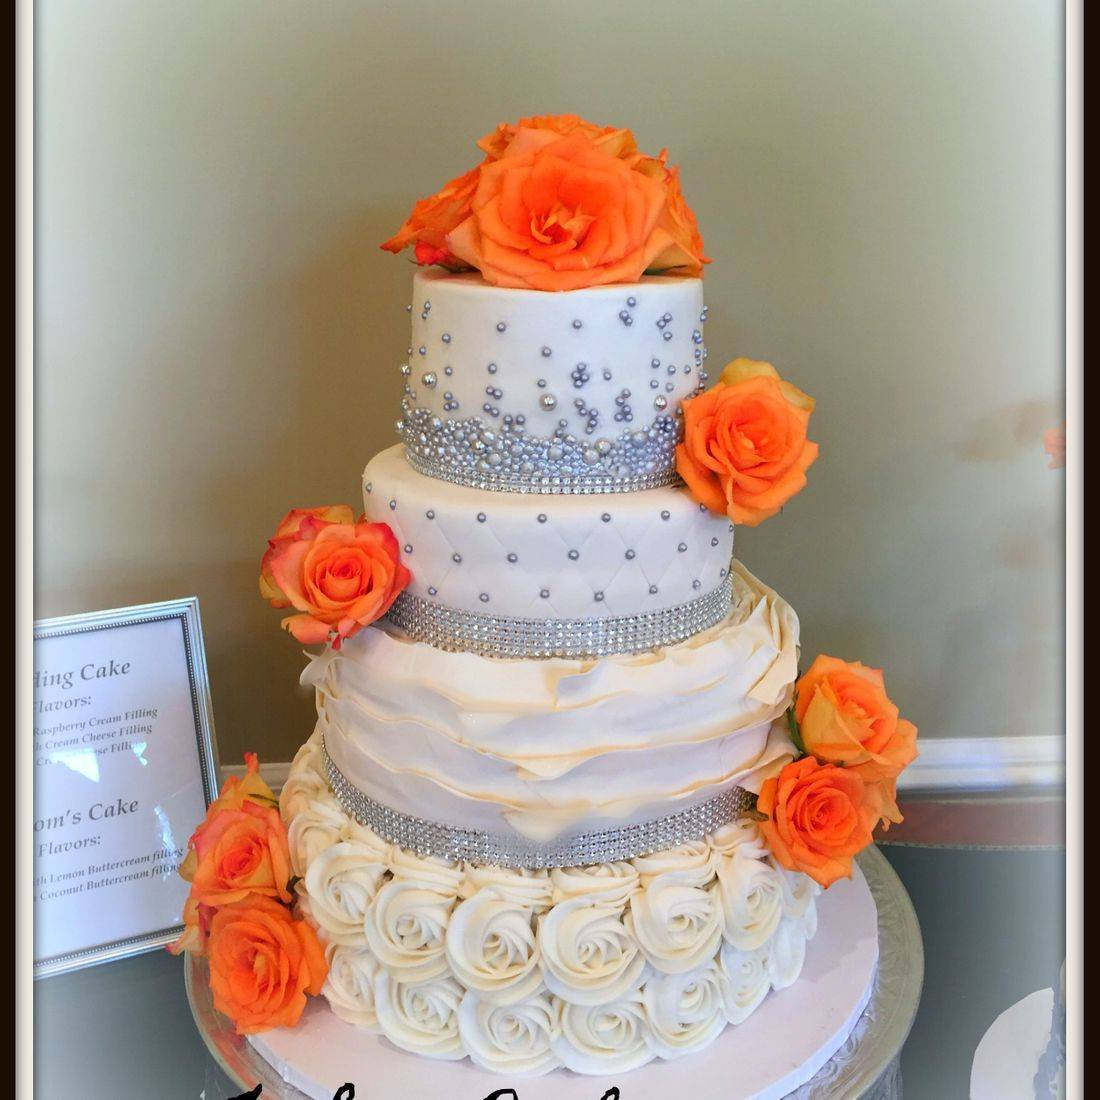 silver and white pearl wedding cake buttercream fresh flowers orange